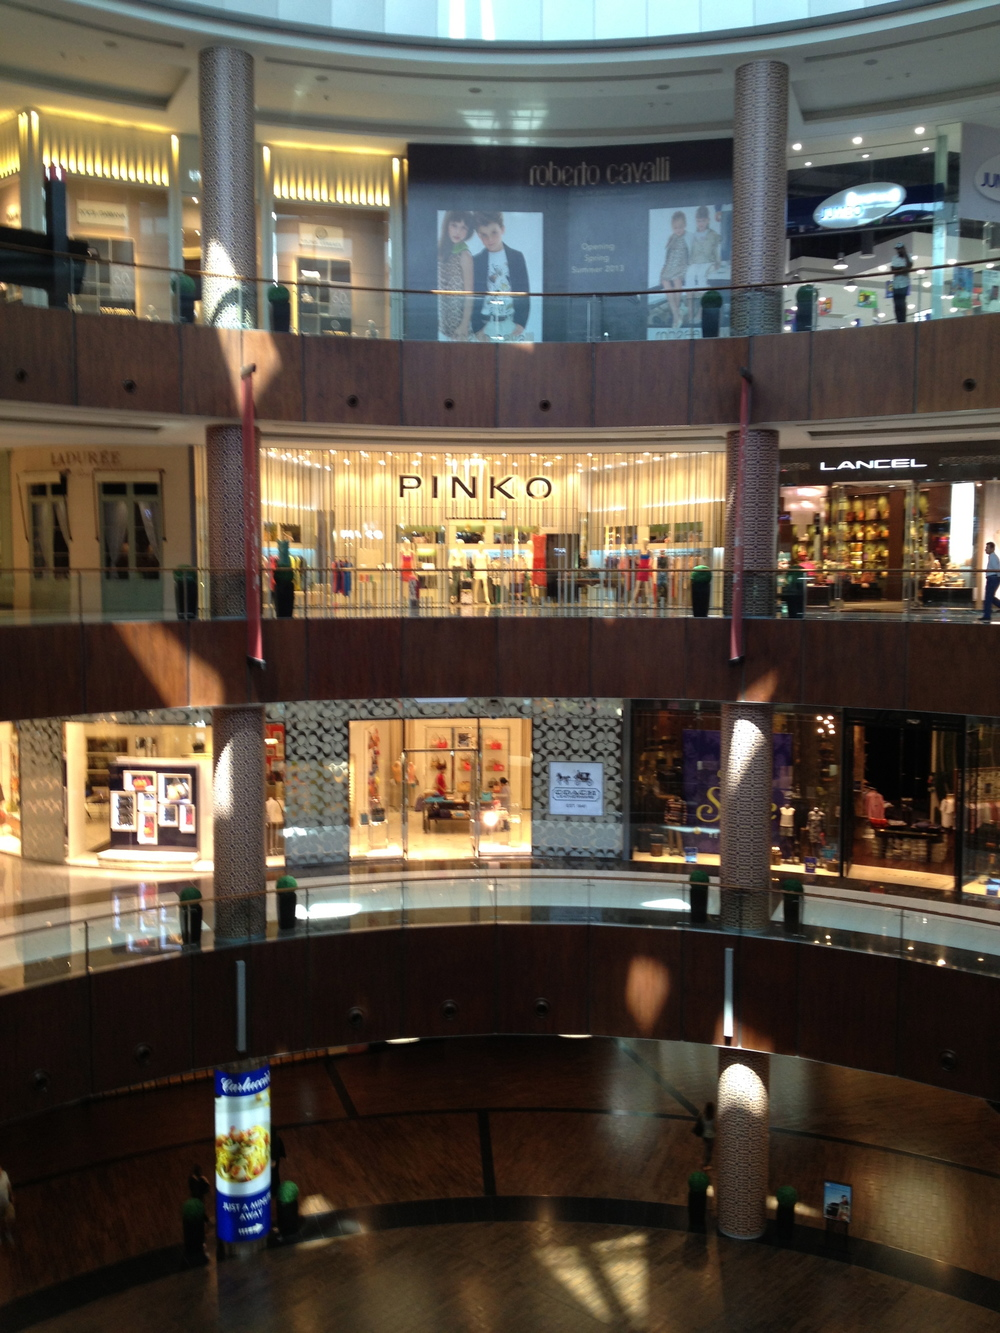 The 4 levels of the Dubai Mall